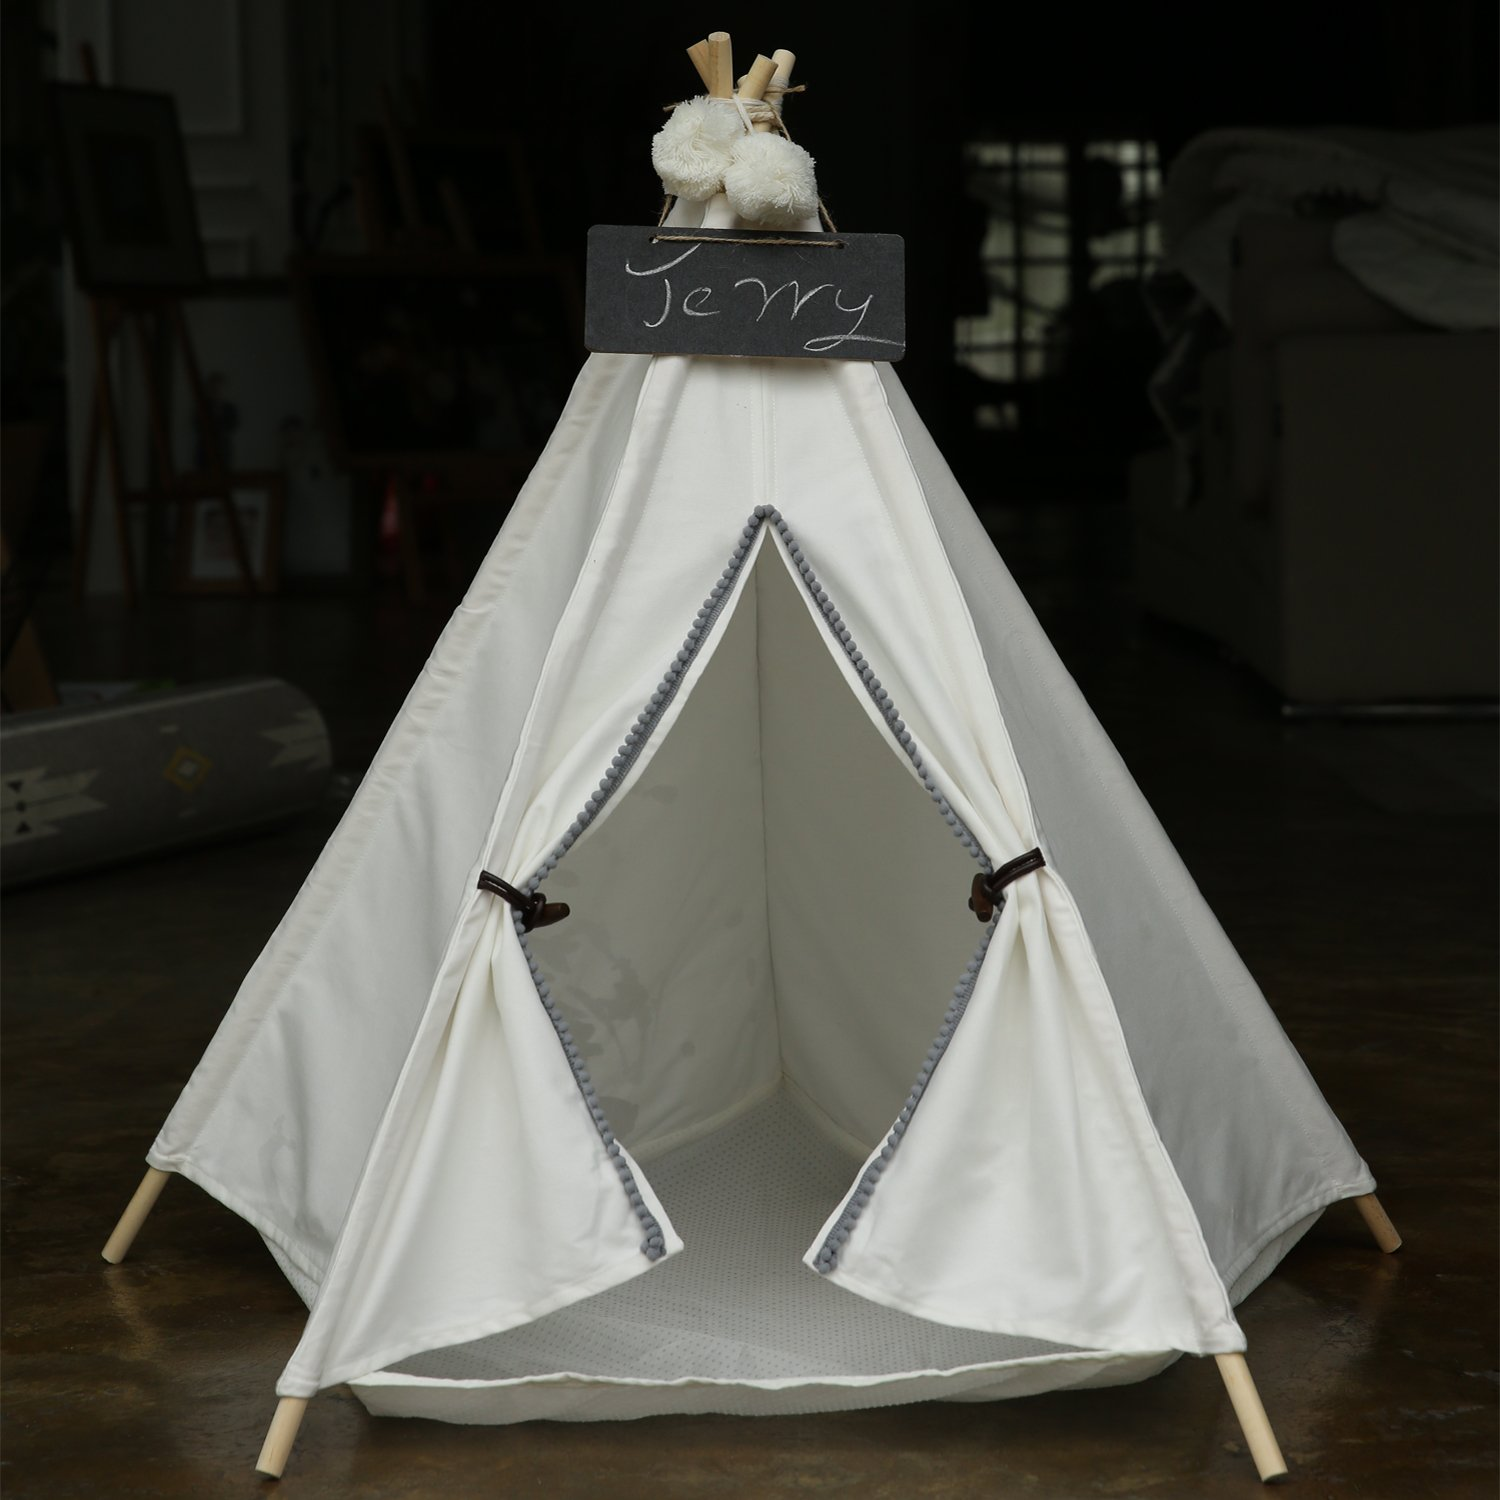 Pet Teepee House - 28 Inch 5-Pole White Canvas Tent with Grey Poms Opening and Horn Buttons, Comes with Pad Mat & Free Hangings, Elegant Cat Dog Puppy Snuggle Bed Furniture By Wonder Space